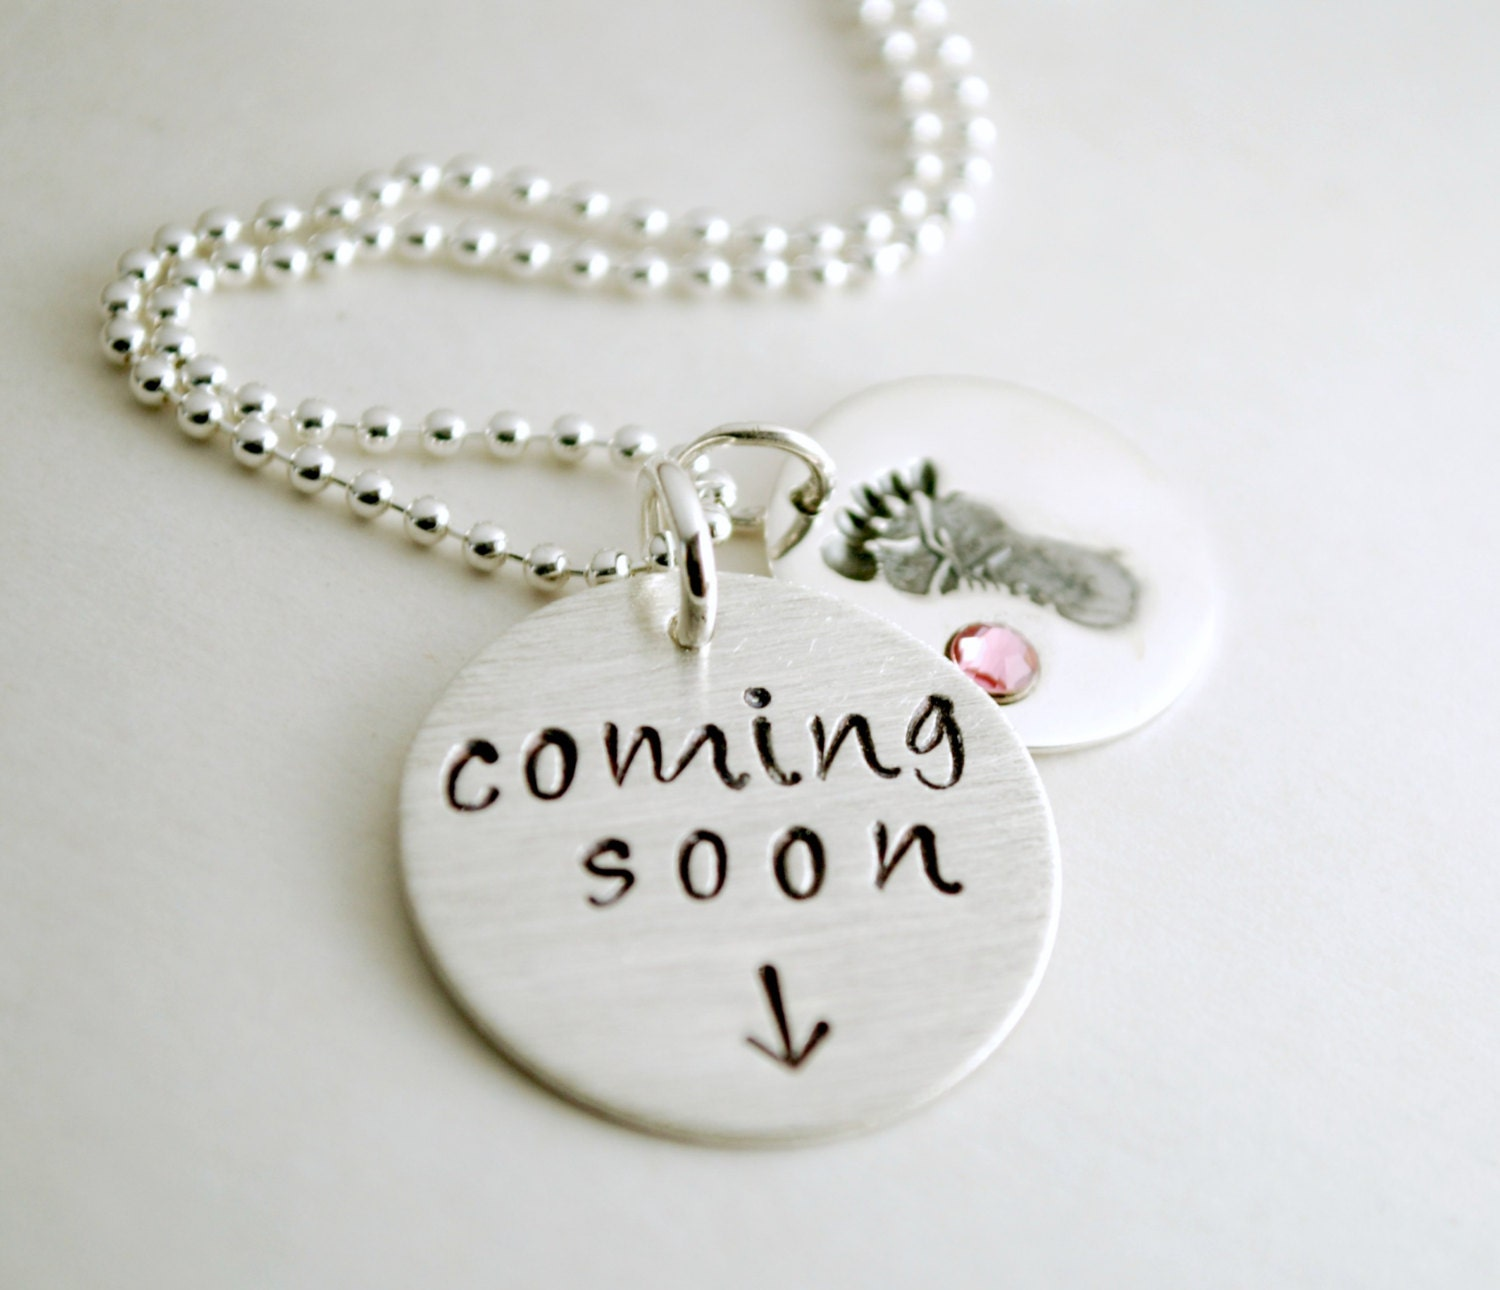 babygirl baby girl necklace pendant products jewelry souvenir